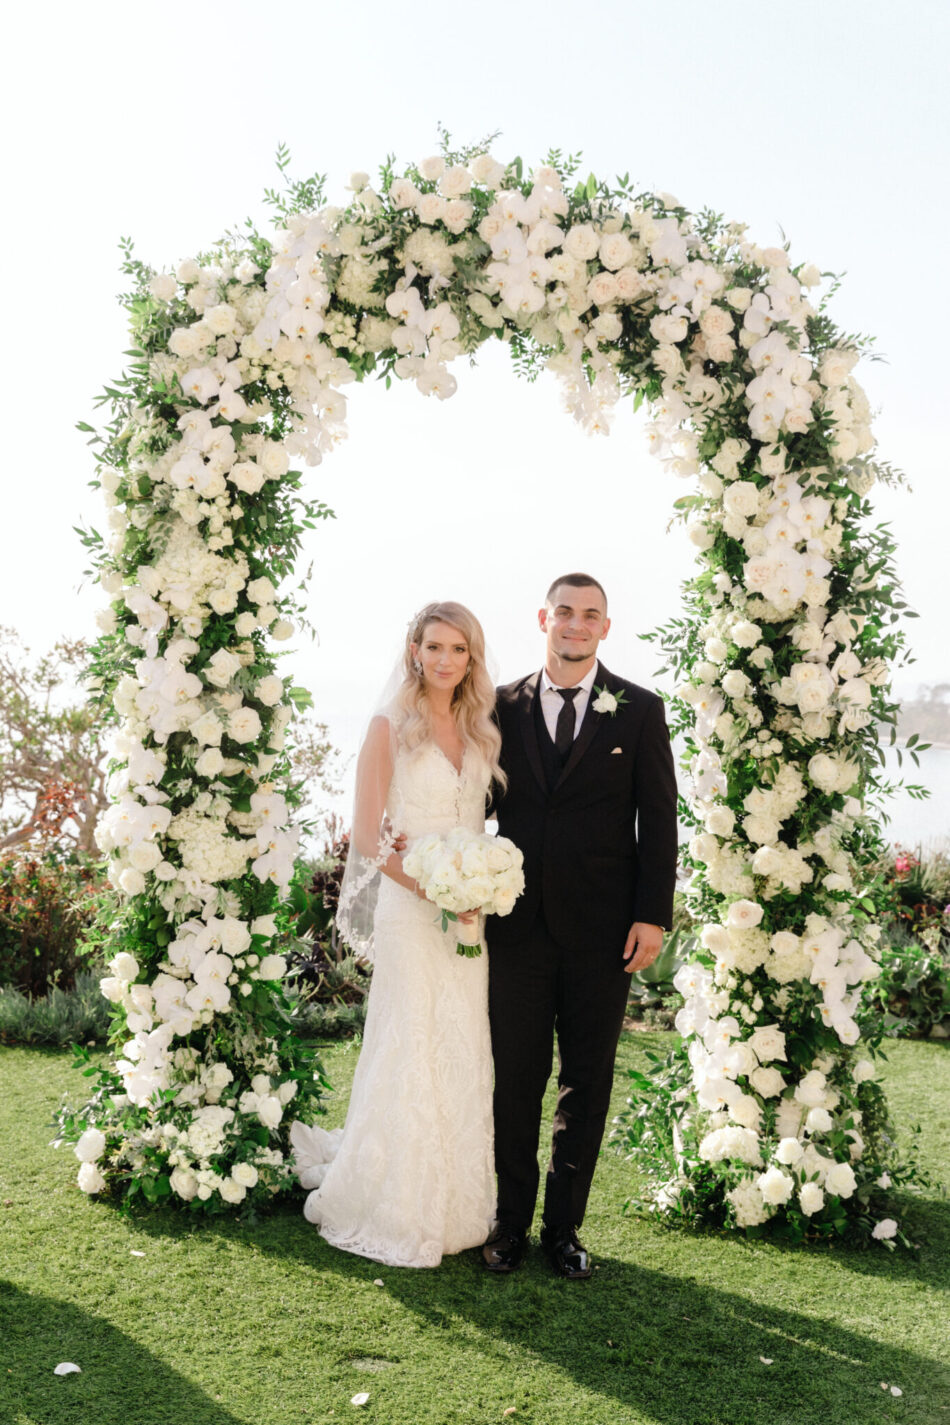 floral arch, newlyweds, beautiful floral-filled wedding, floral design, florist, wedding florist, wedding flowers, orange county weddings, orange county wedding florist, orange county florist, orange county floral design, flowers by cina